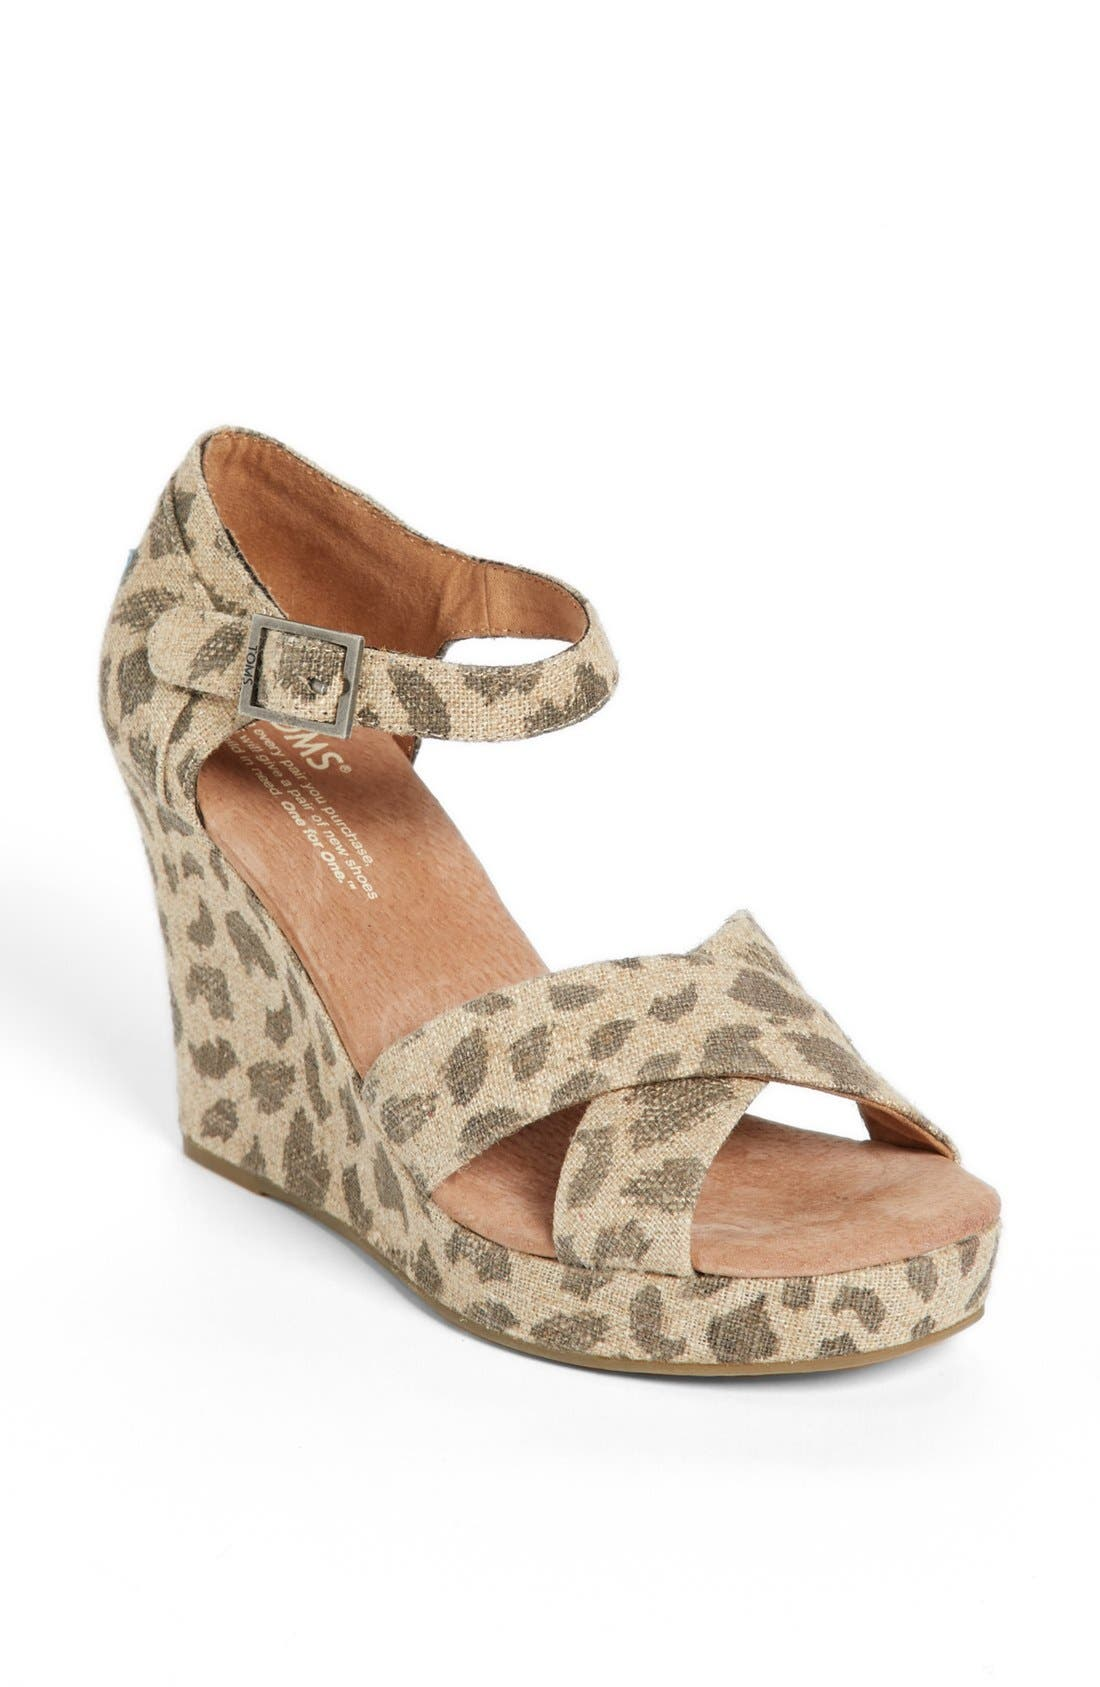 Alternate Image 1 Selected - TOMS 'Leopard' Wedge Sandal